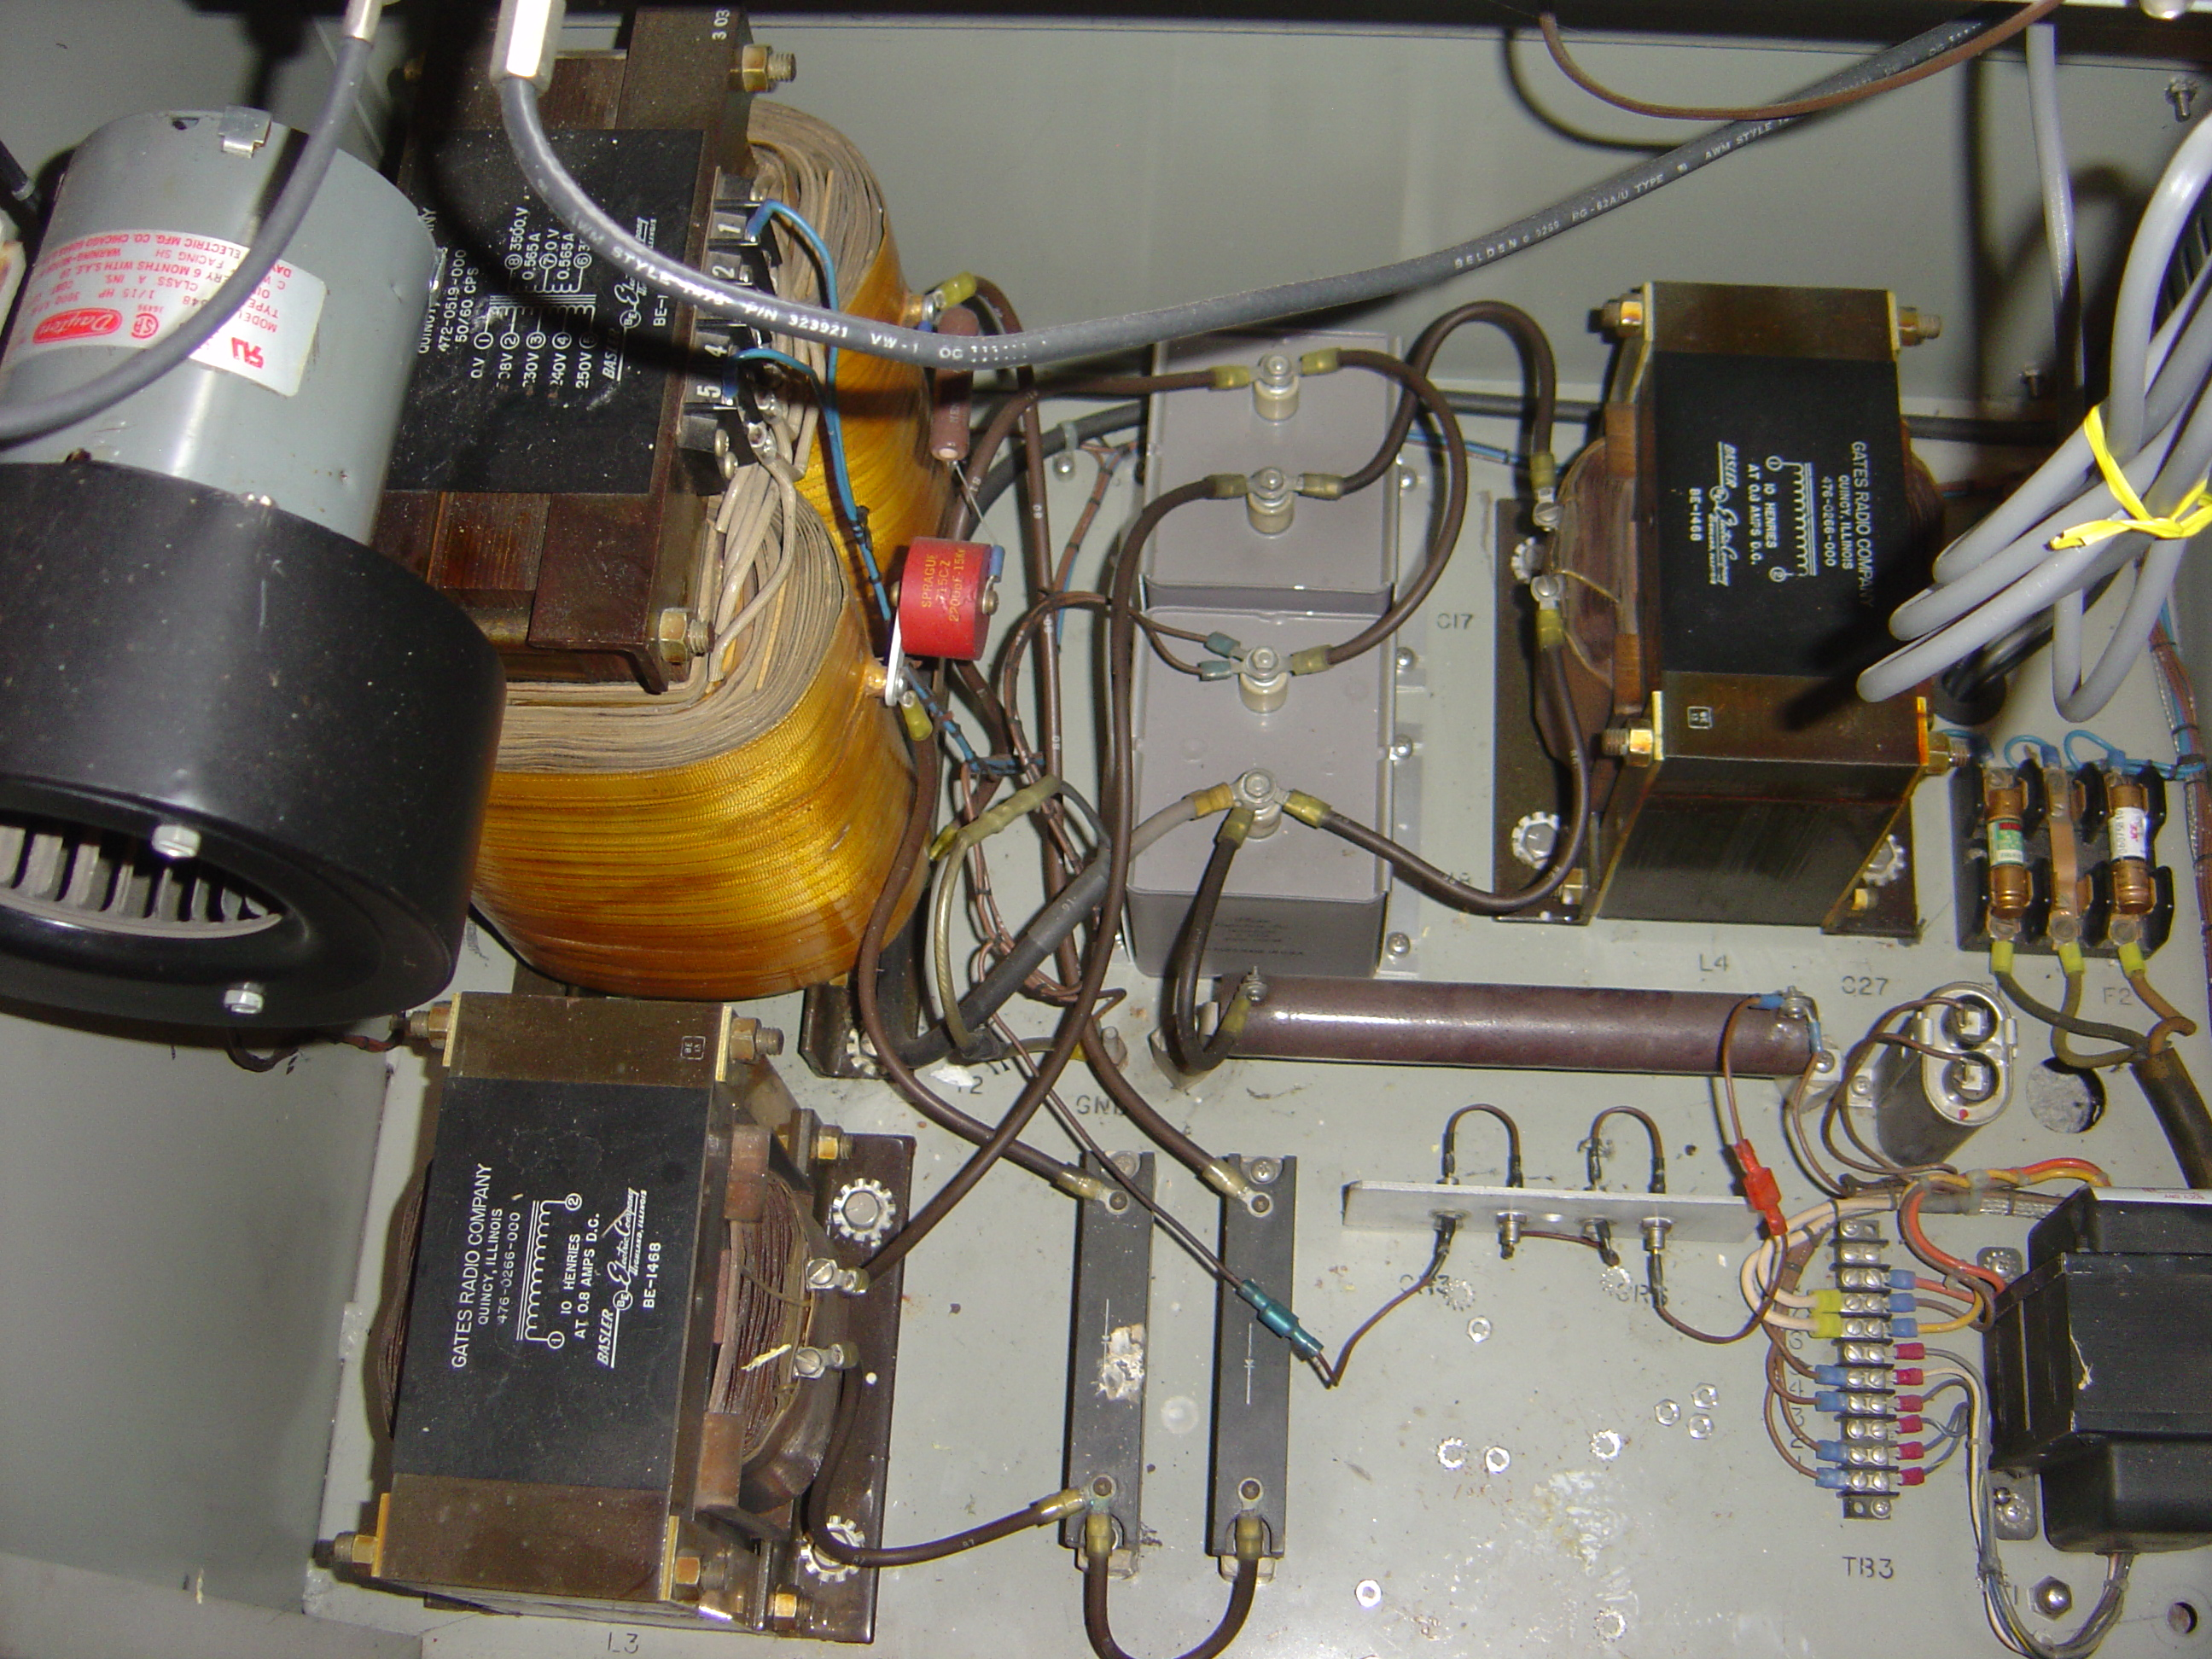 Picture of the inside of the Transmitter - Left Rear is Power Transformer. <br>Yeah, I know you don't care.